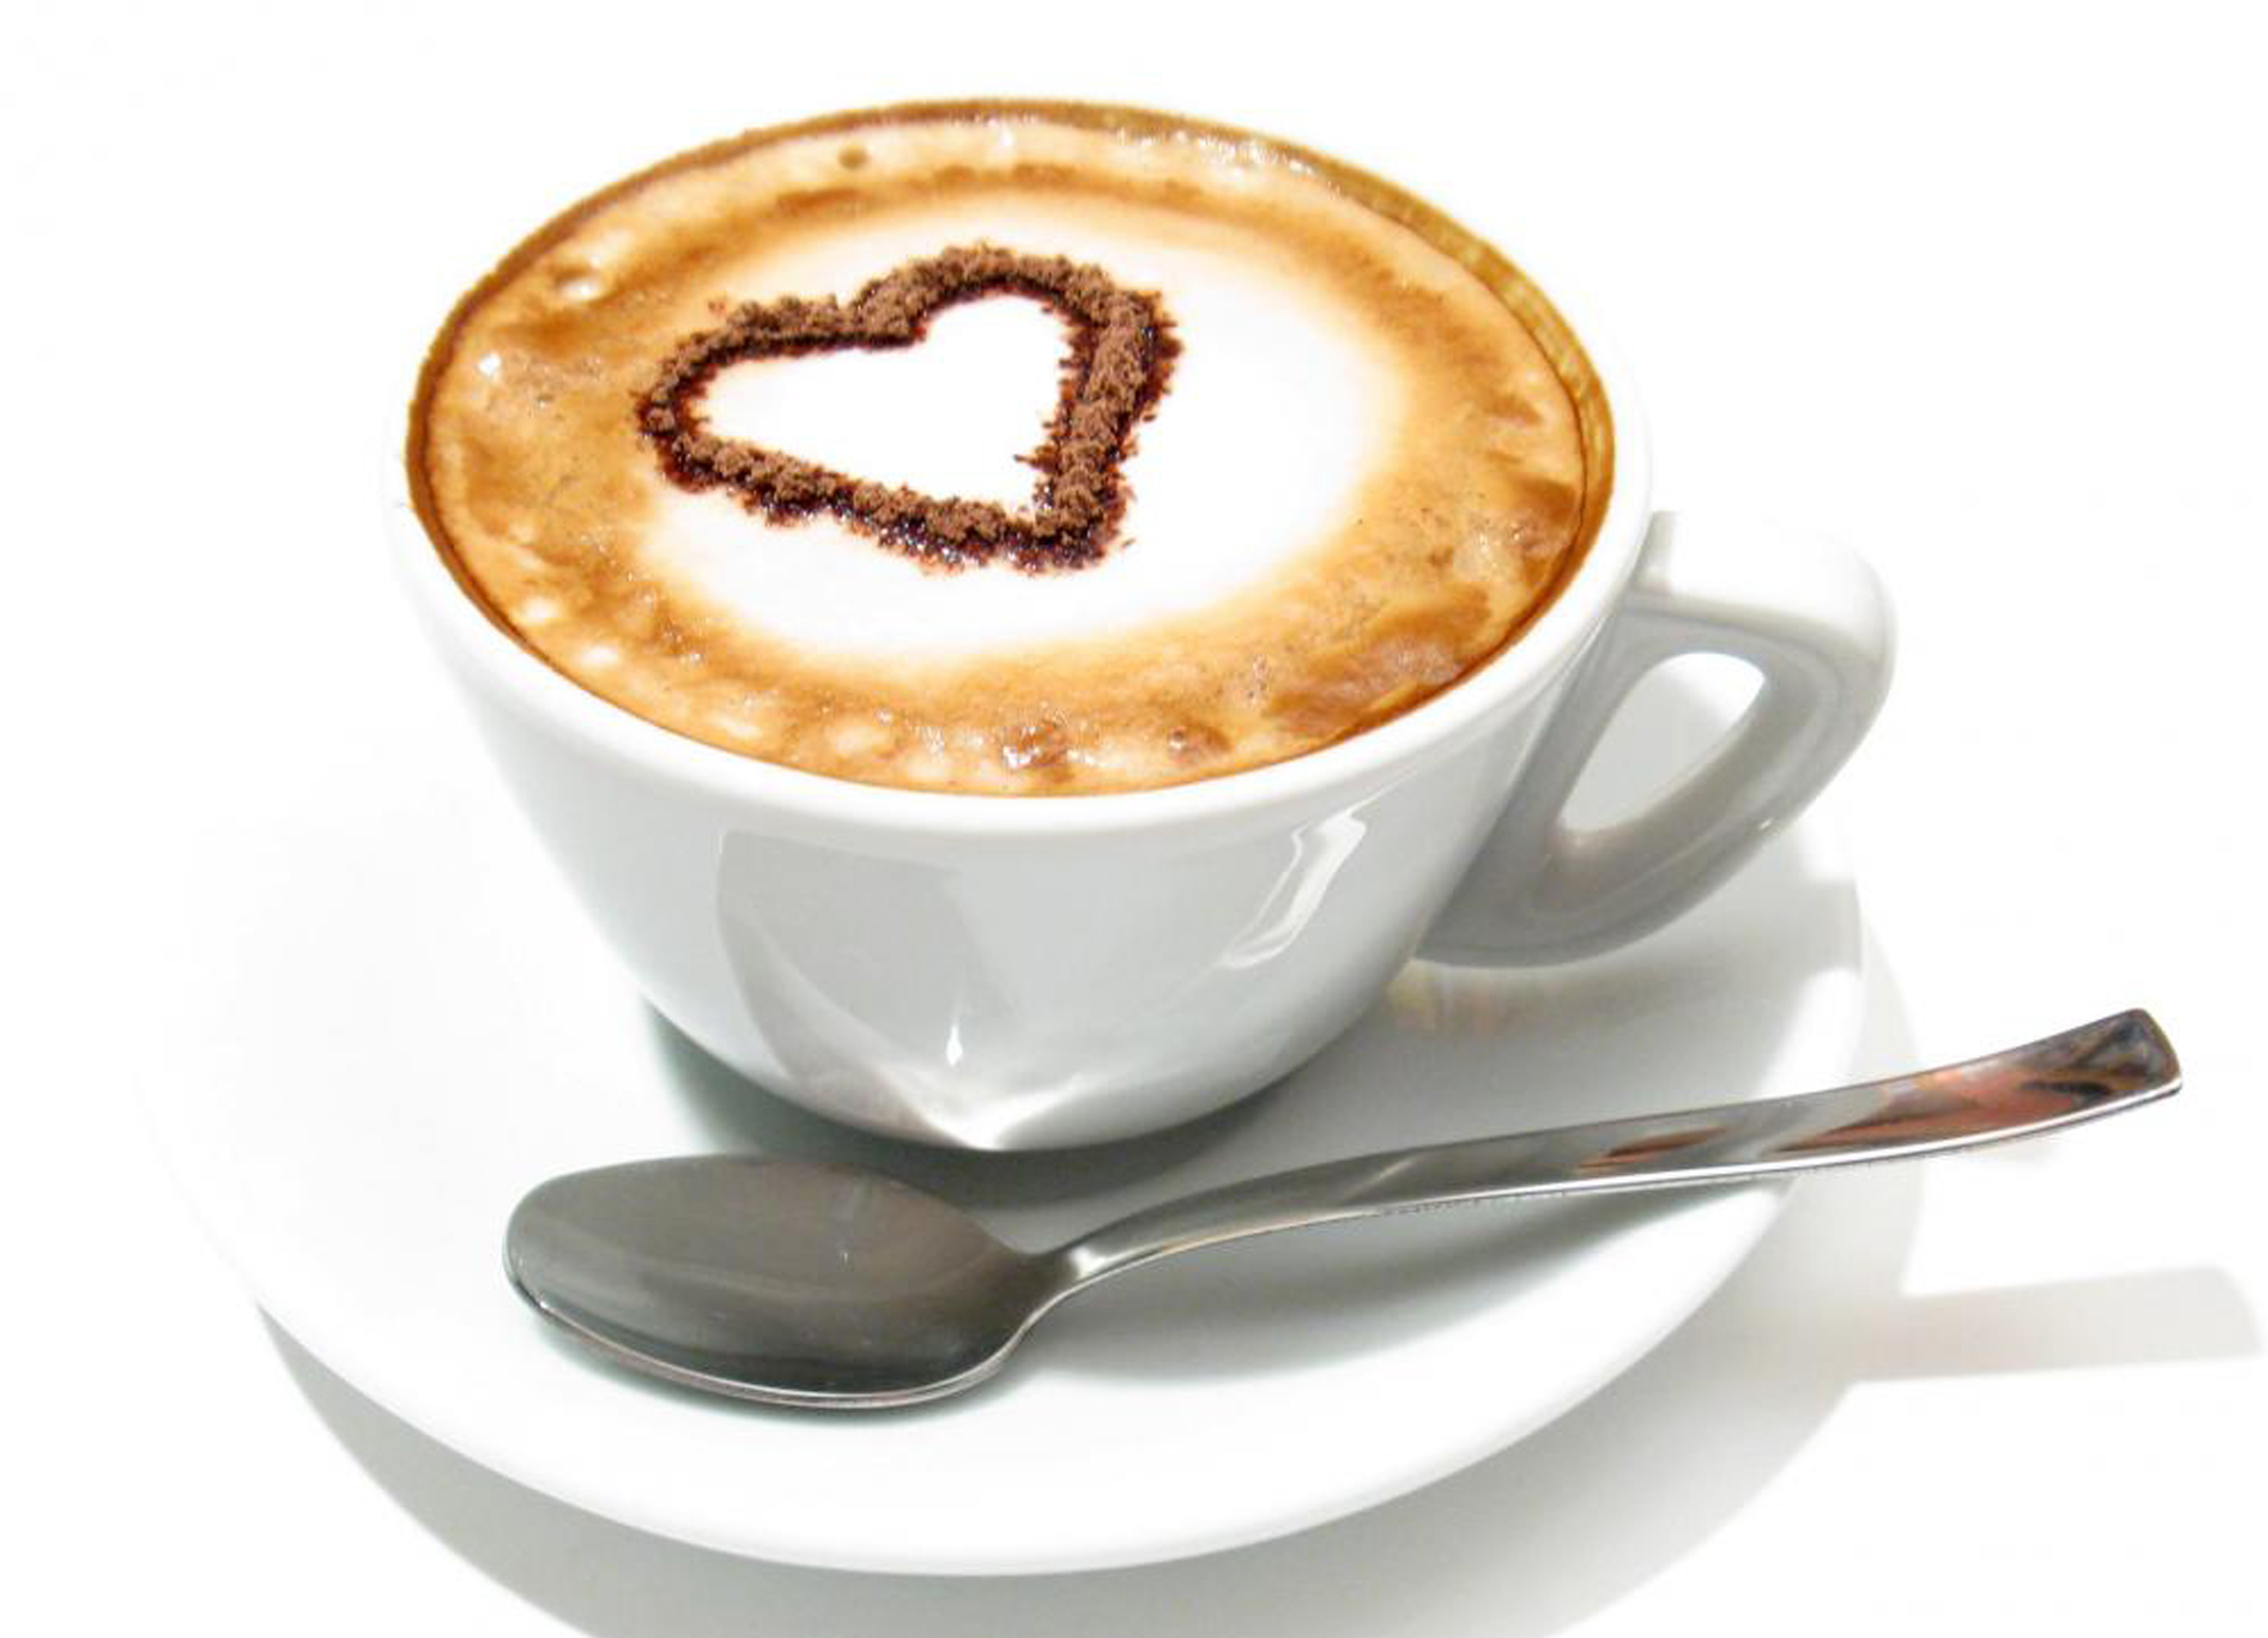 shout your loved ones peace of mind for less than the price of a cup of coffee